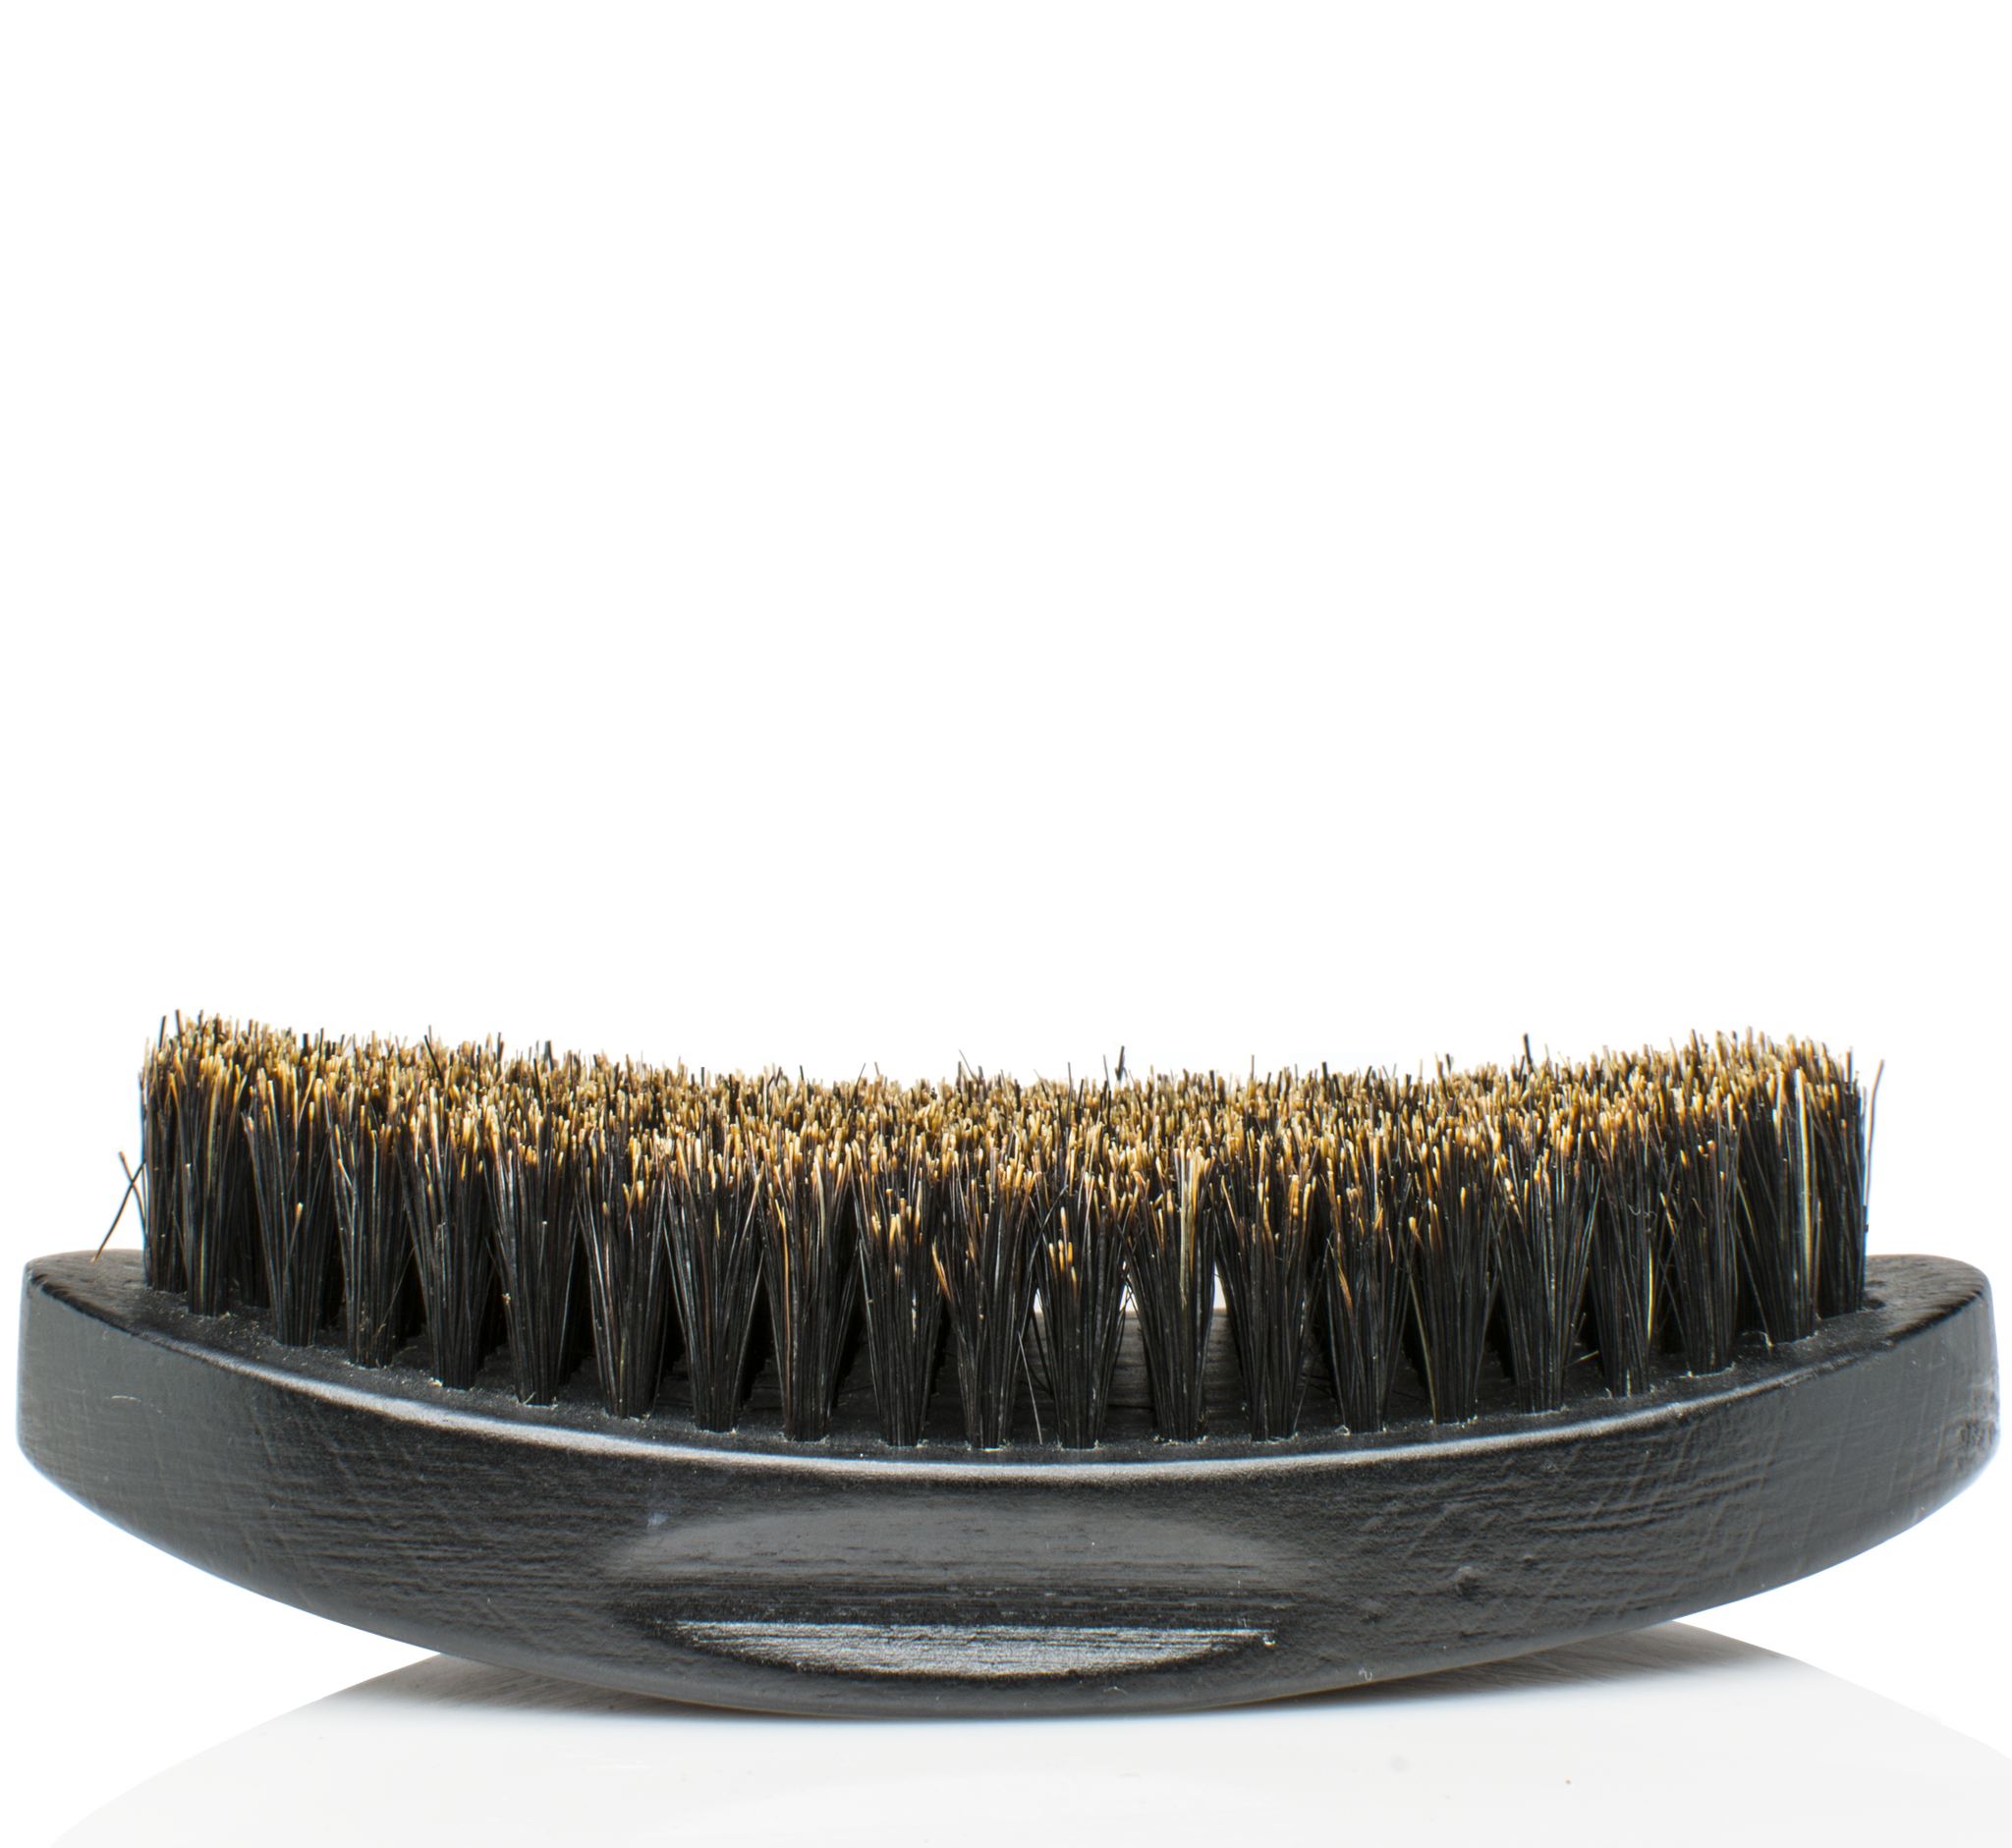 Beard Brush - 100% Boar Bristle Beard Brush